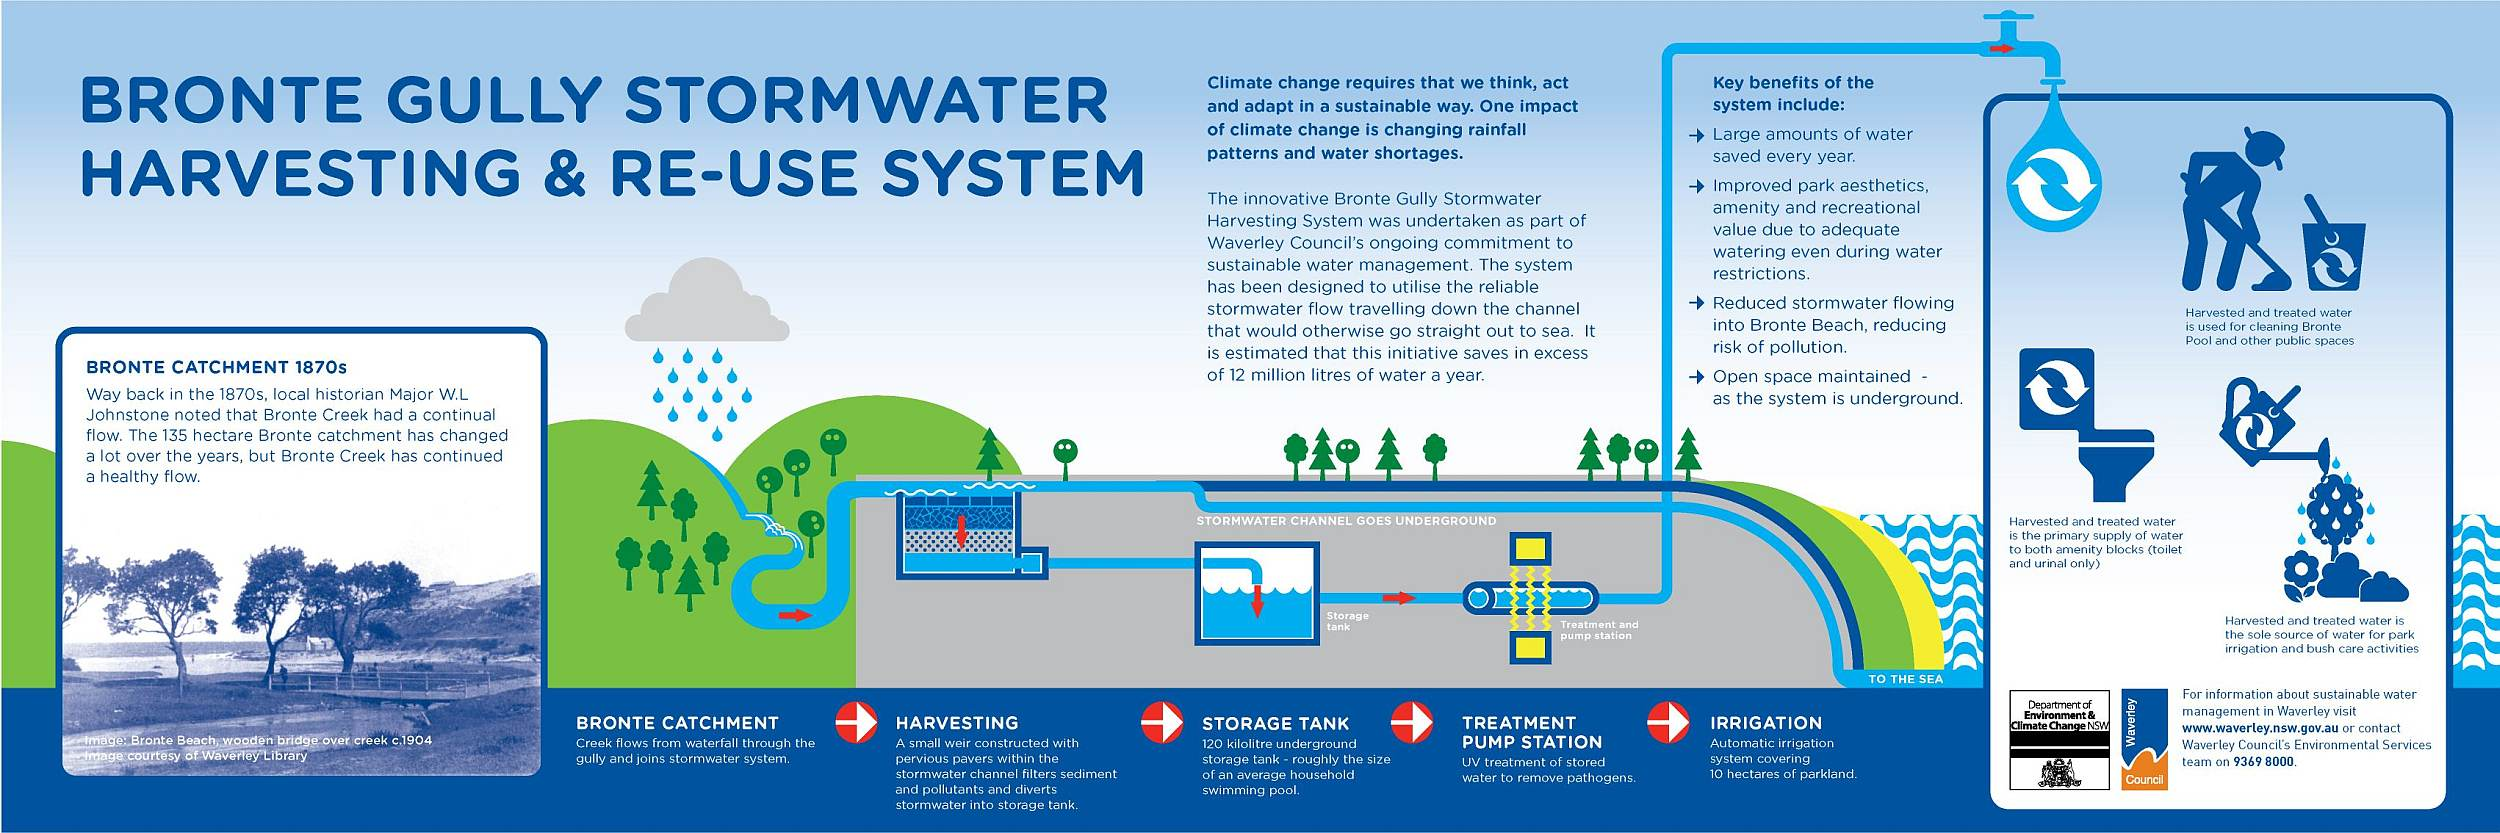 Bronte_stormwater_flow_diagram bronte gully stormwater harvesting & re use waverley council